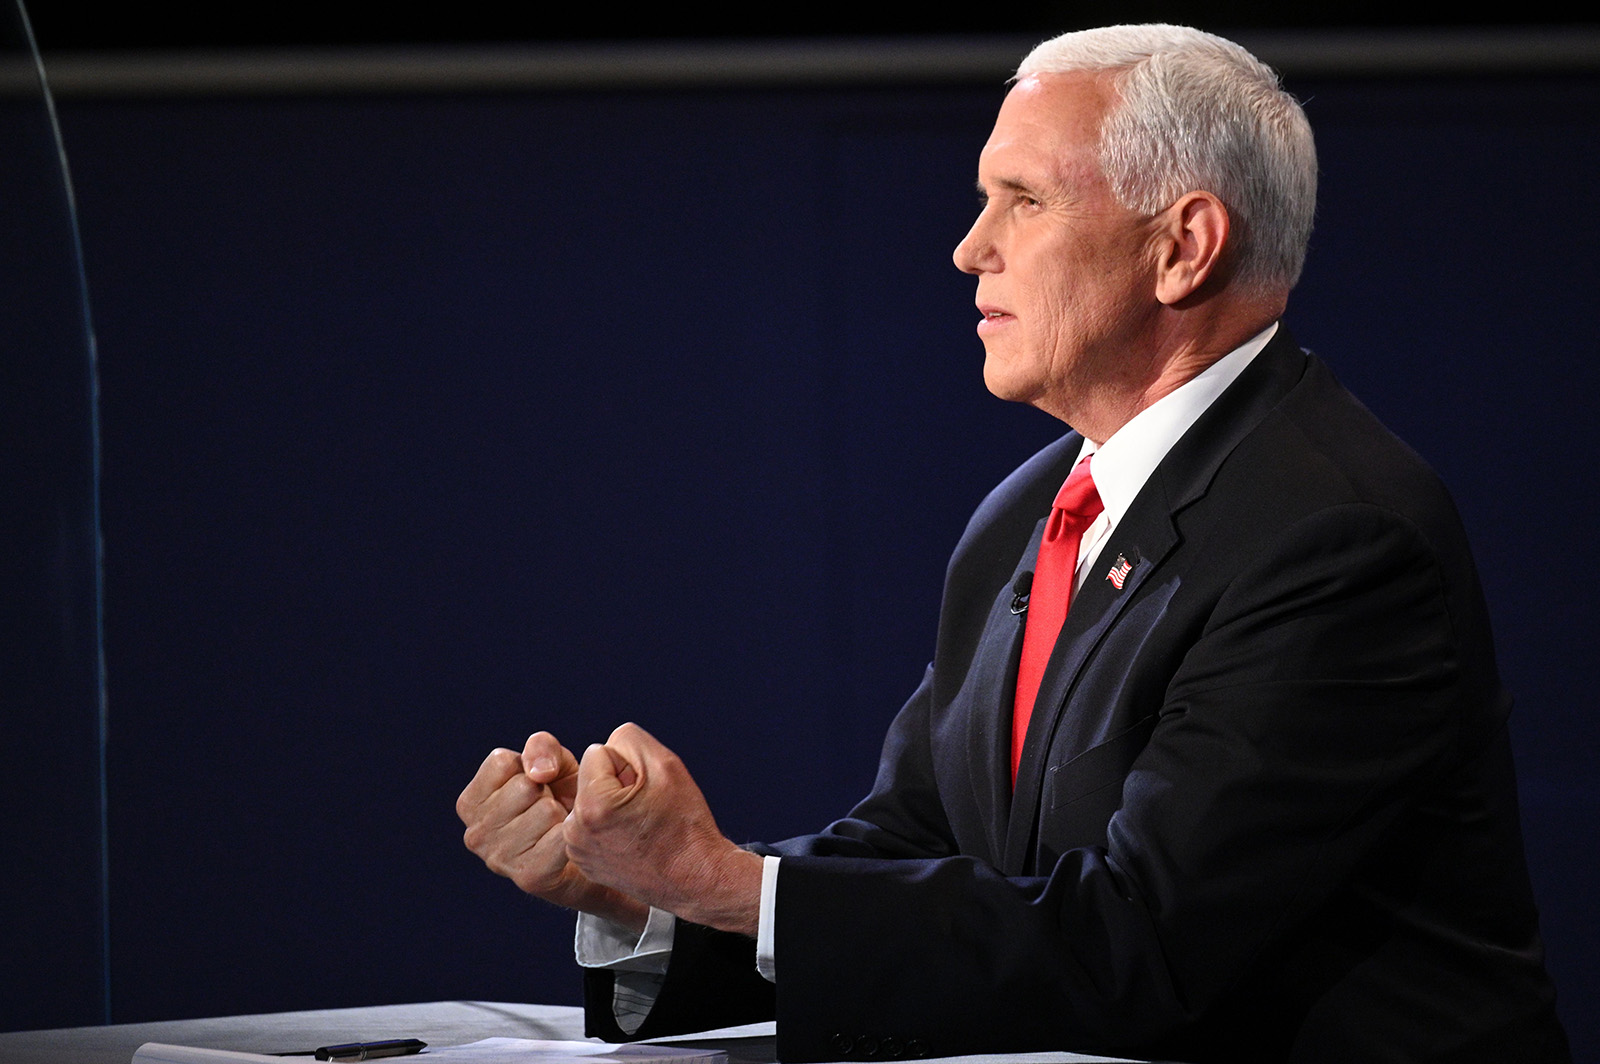 Vice President Mike Pence Mike Pence gestures as he speaks during the vice presidential debate in Salt Lake City on Wednesday.